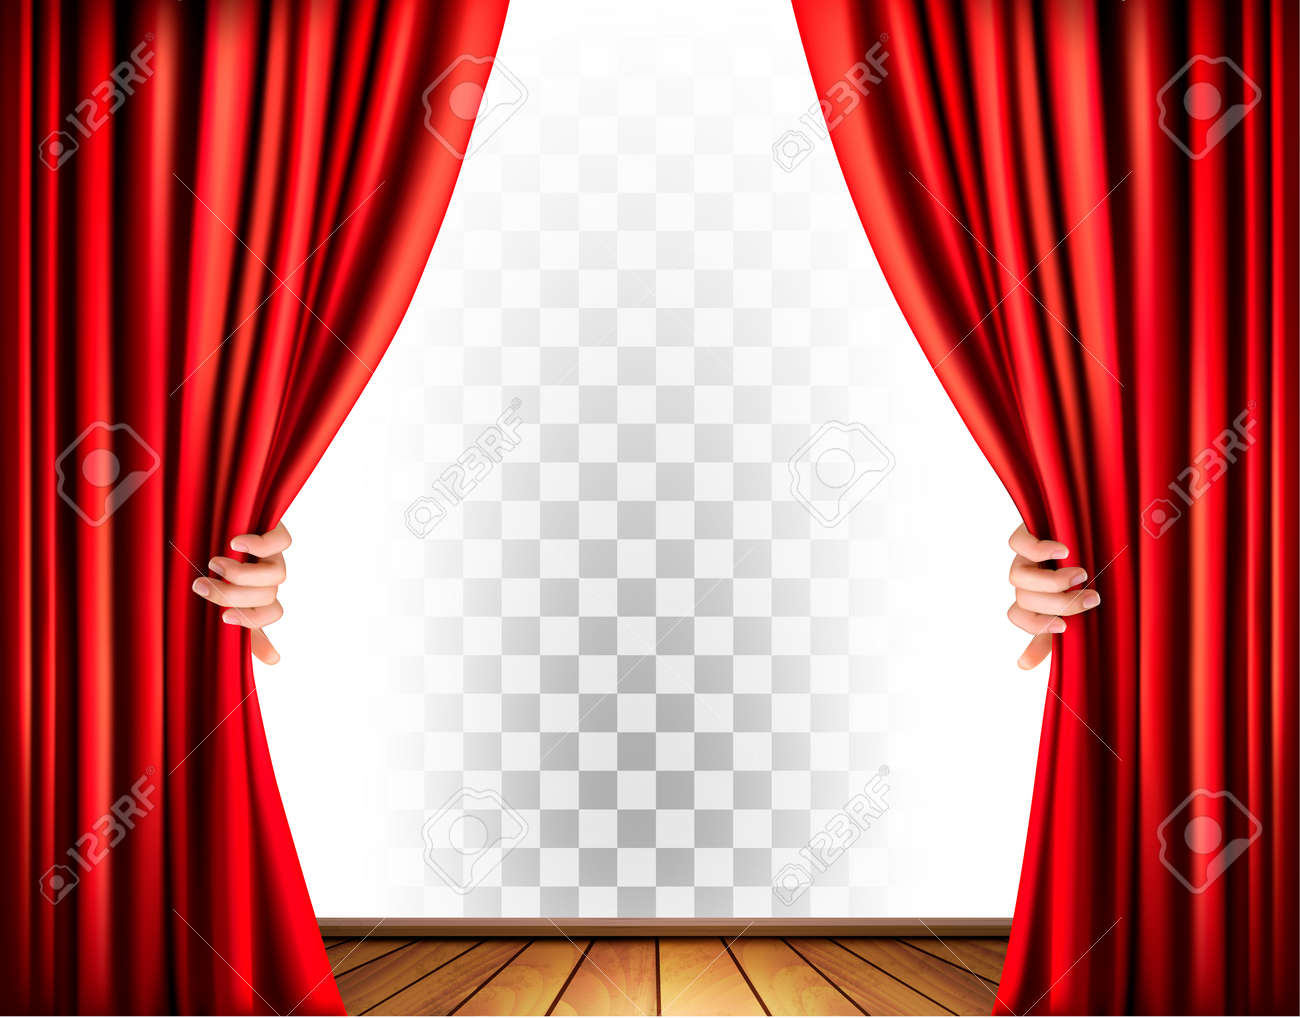 Theater curtains with a transparent background. Vector. - 57231219